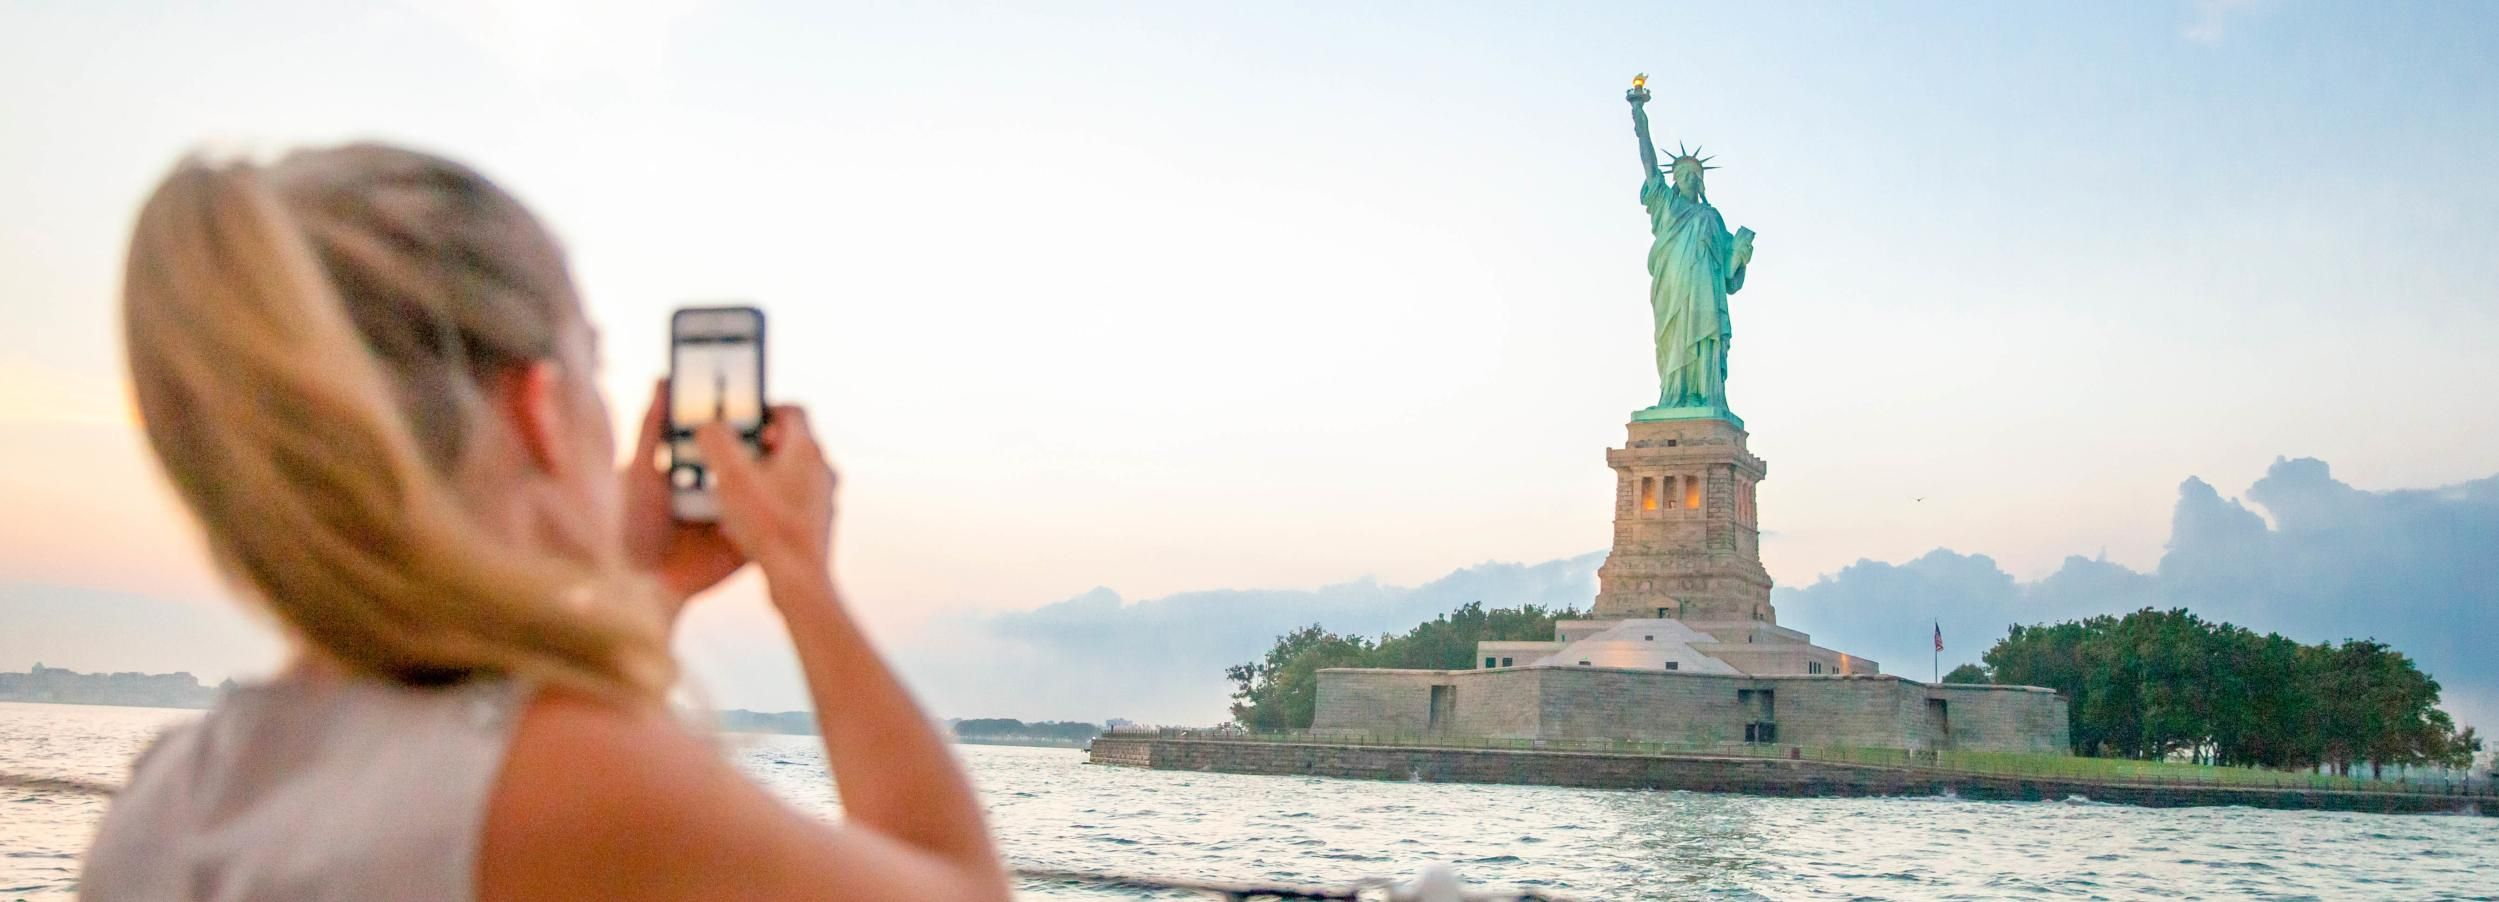 60-Minute Cruise Around the Statue of Liberty & Ellis Island